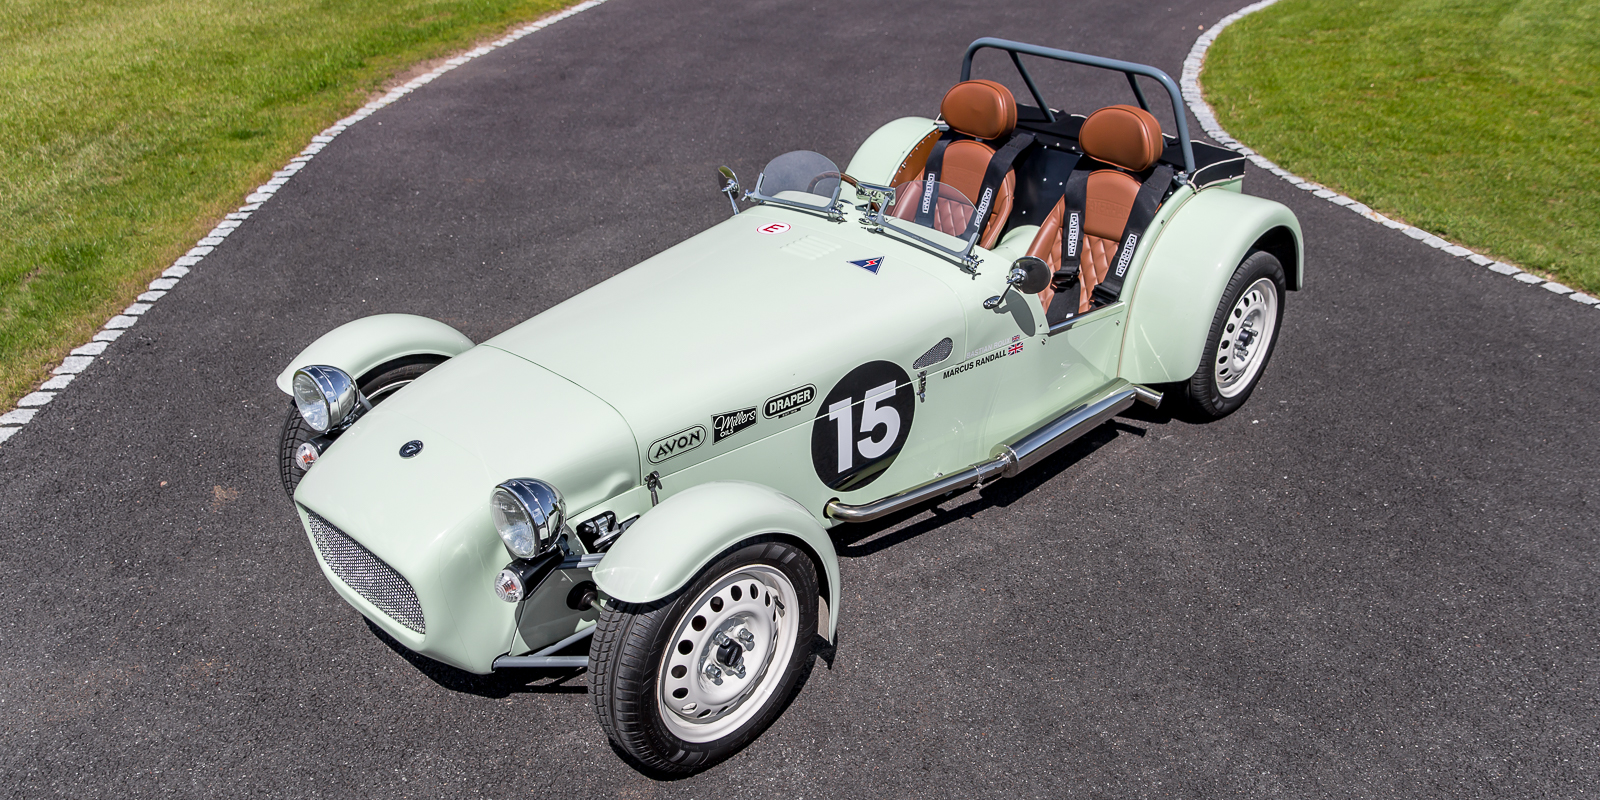 Caterham 7 Super Sprint – No.7 of Limited Edition 60th Anniversary